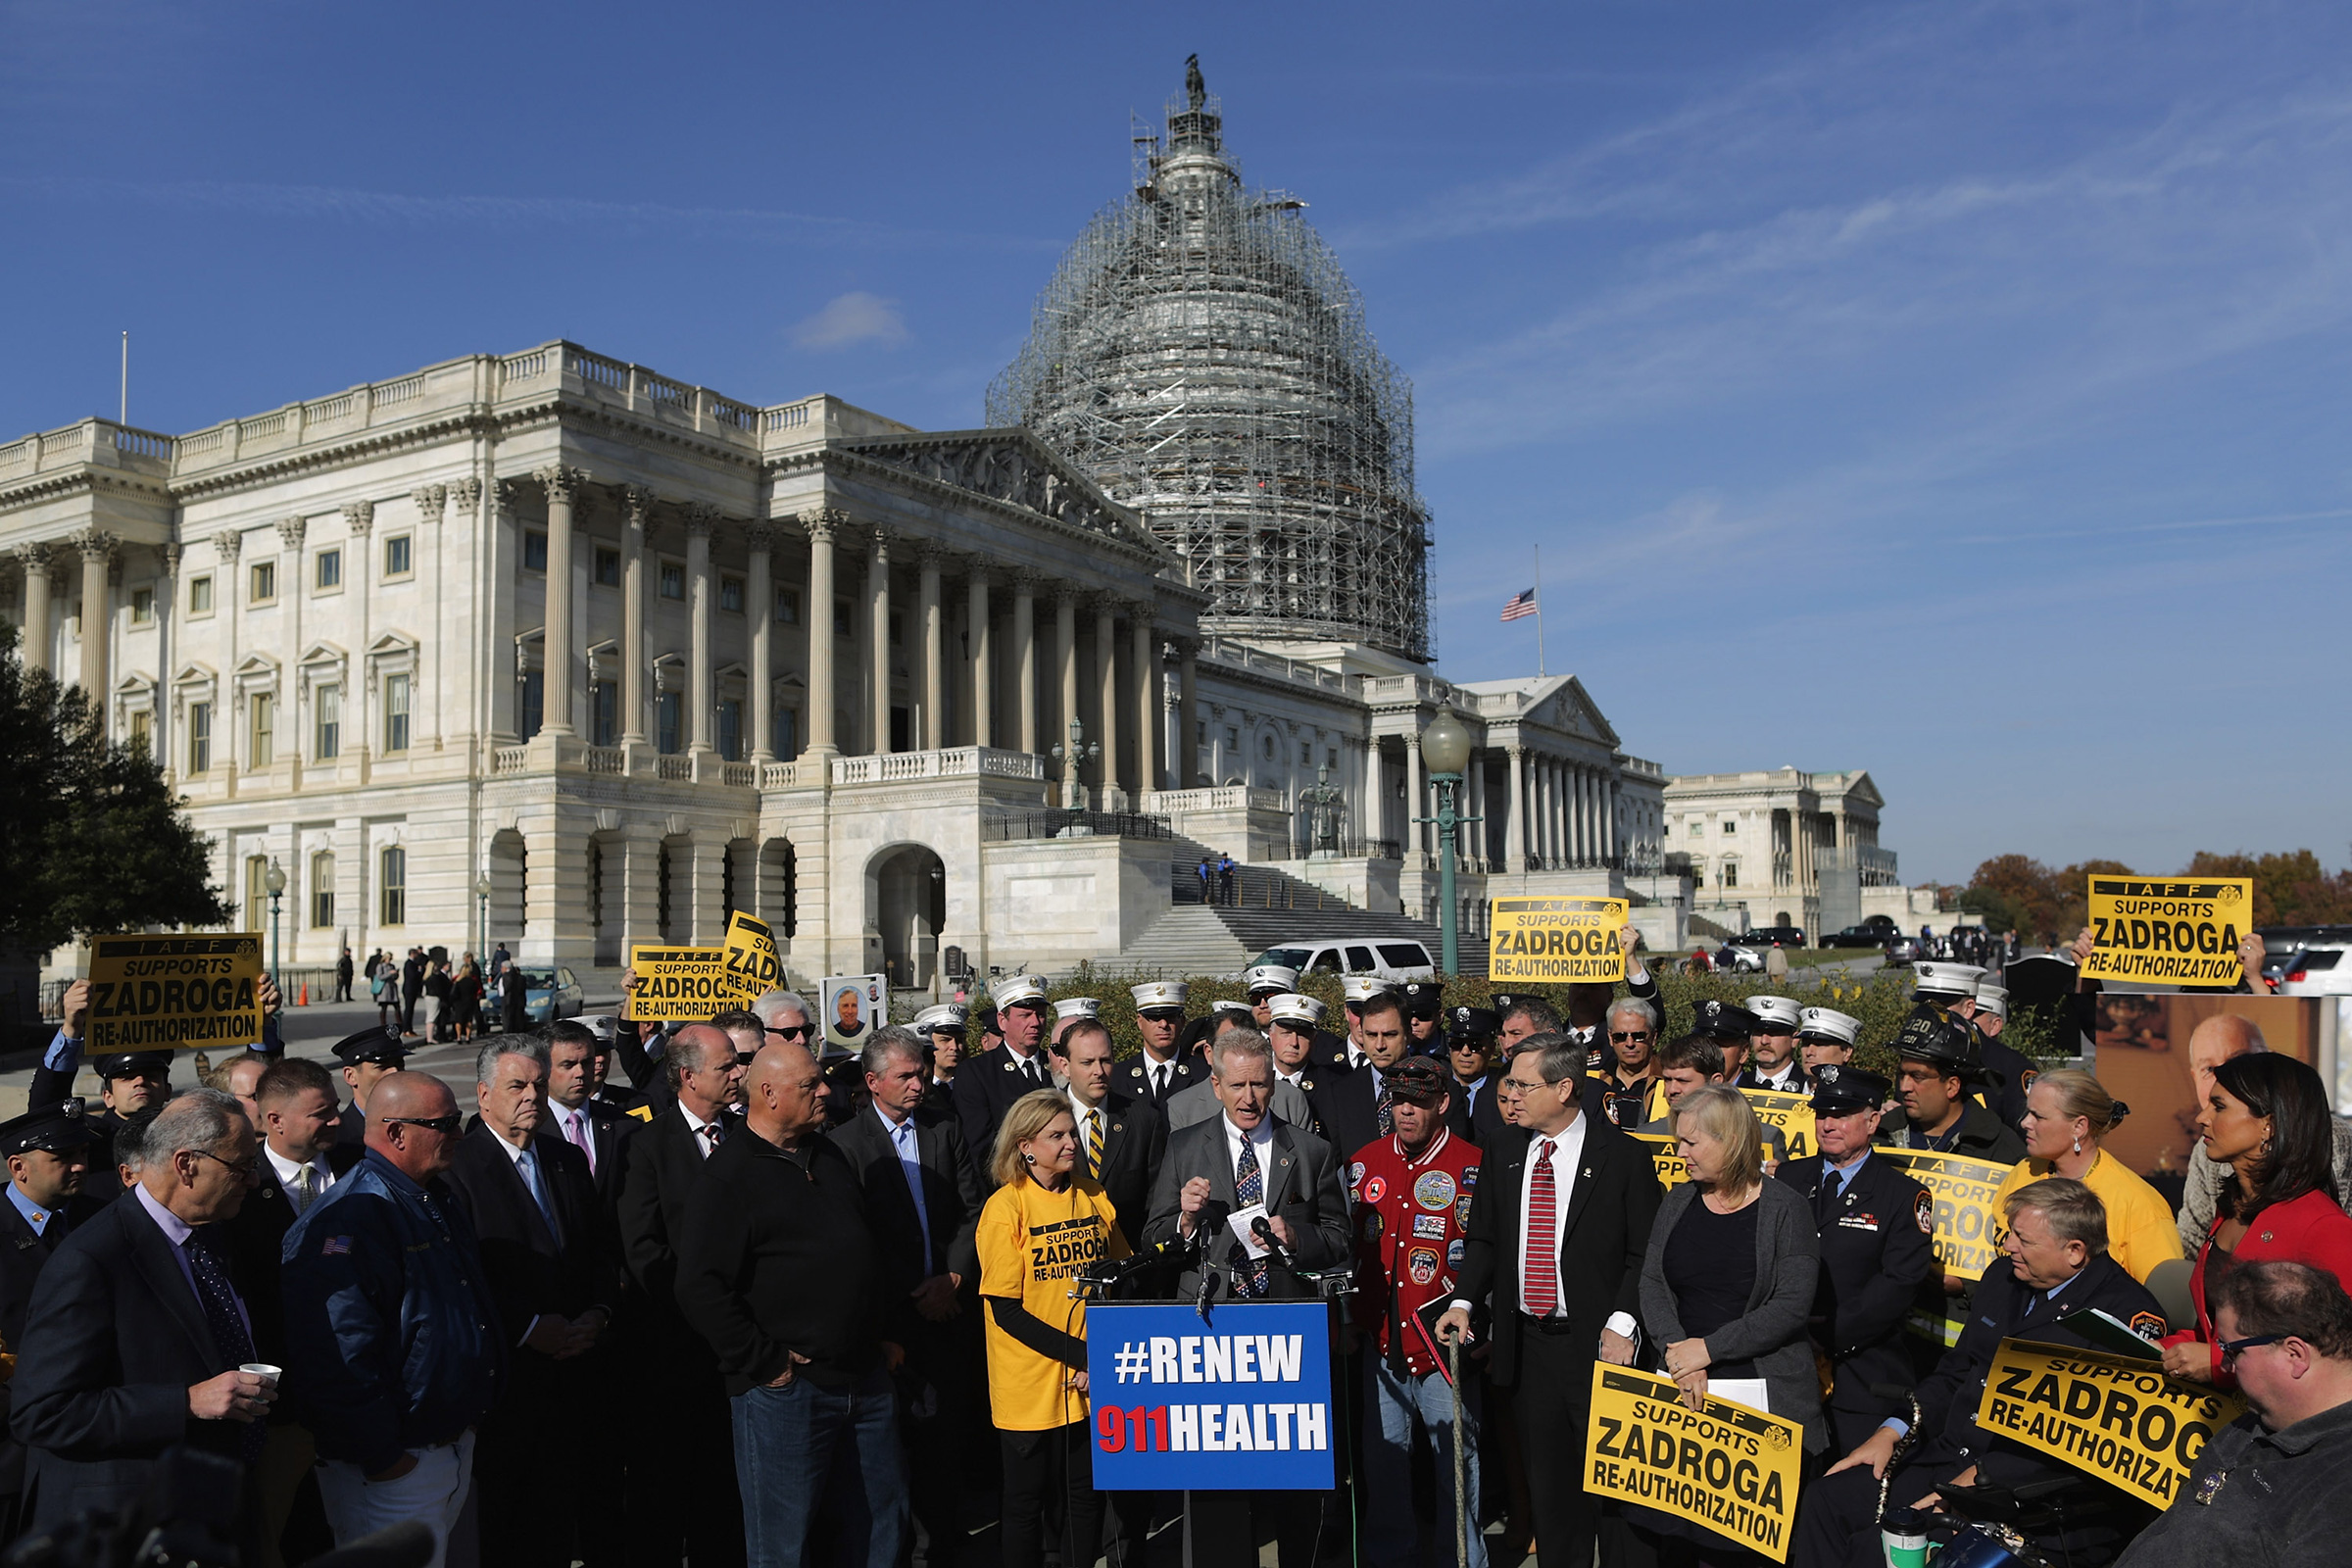 Senate and House Democrats hold a news conference with first responders from New York and members of the Iraq and Afghanistan Veterans of America to announce their support for the permanent reauthorization of the James Zadroga 9/11 Health and Compensation Reauthorization Act outside the U.S. Capitol in Washington, D.C., on Nov. 17, 2015.